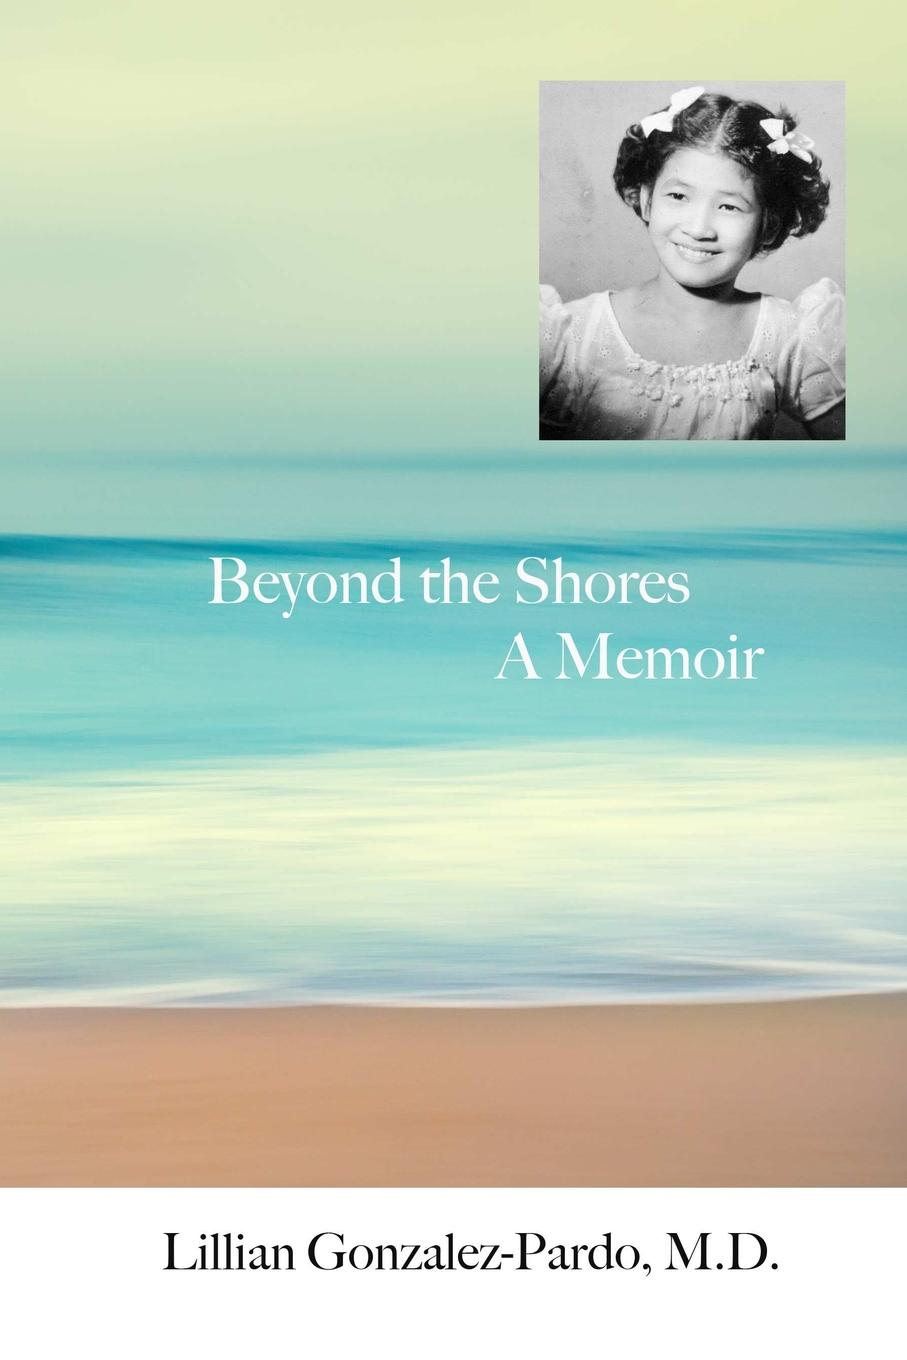 M.D. Lillian Gonzalez-Pardo Beyond the Shores diana her true story in her own words